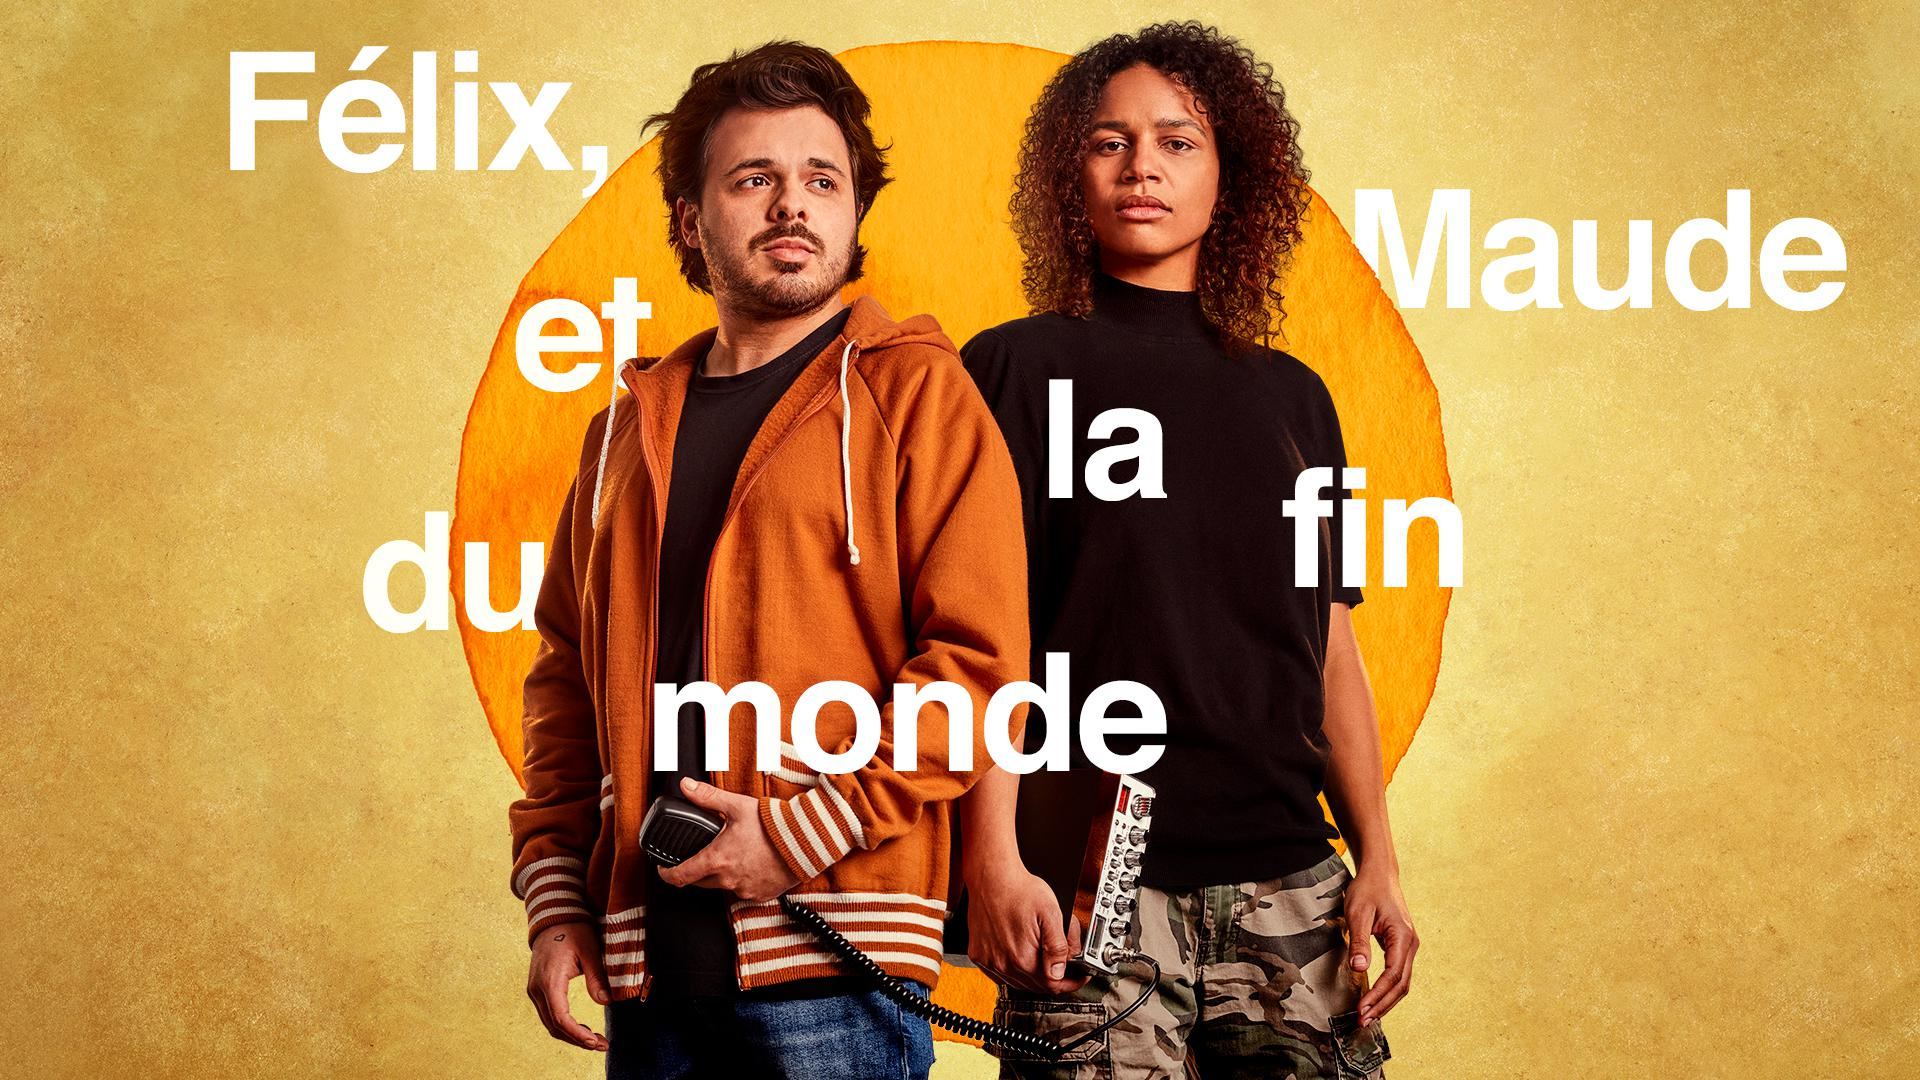 Félix, Maude and the end of the world